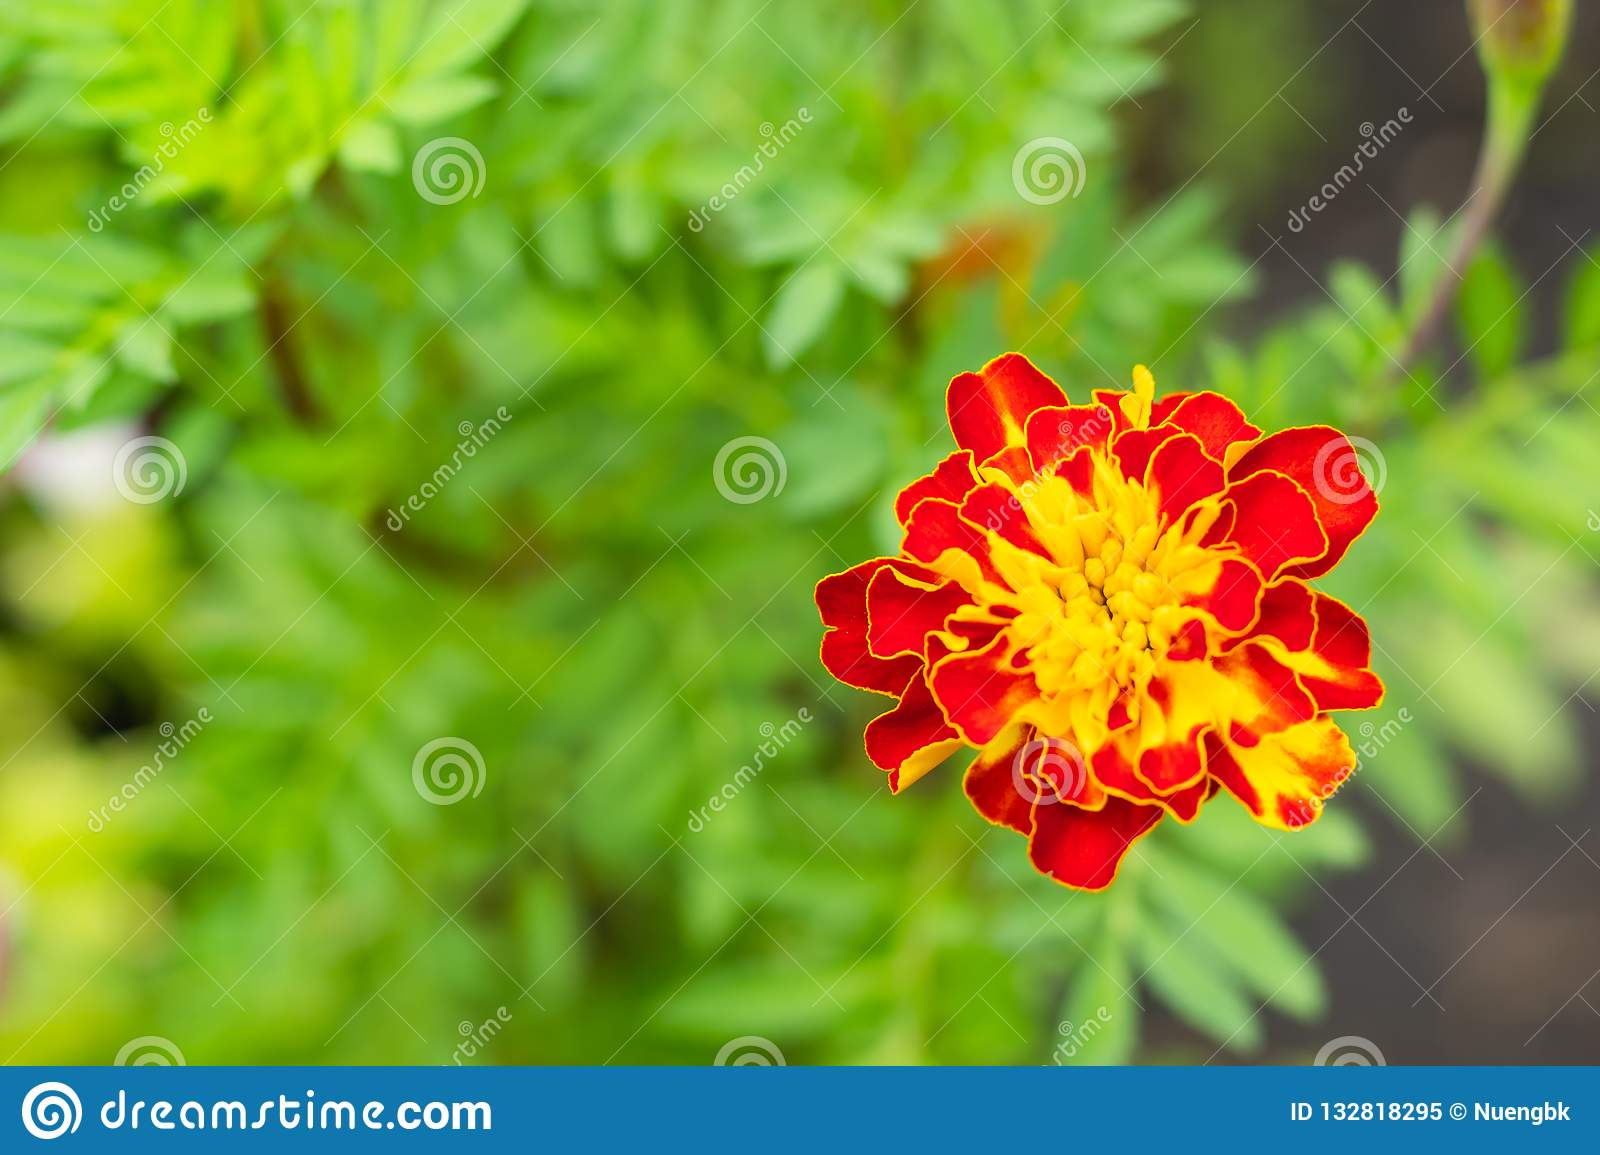 Red Flower Stamen Yellow On Green Leaf Background Stock